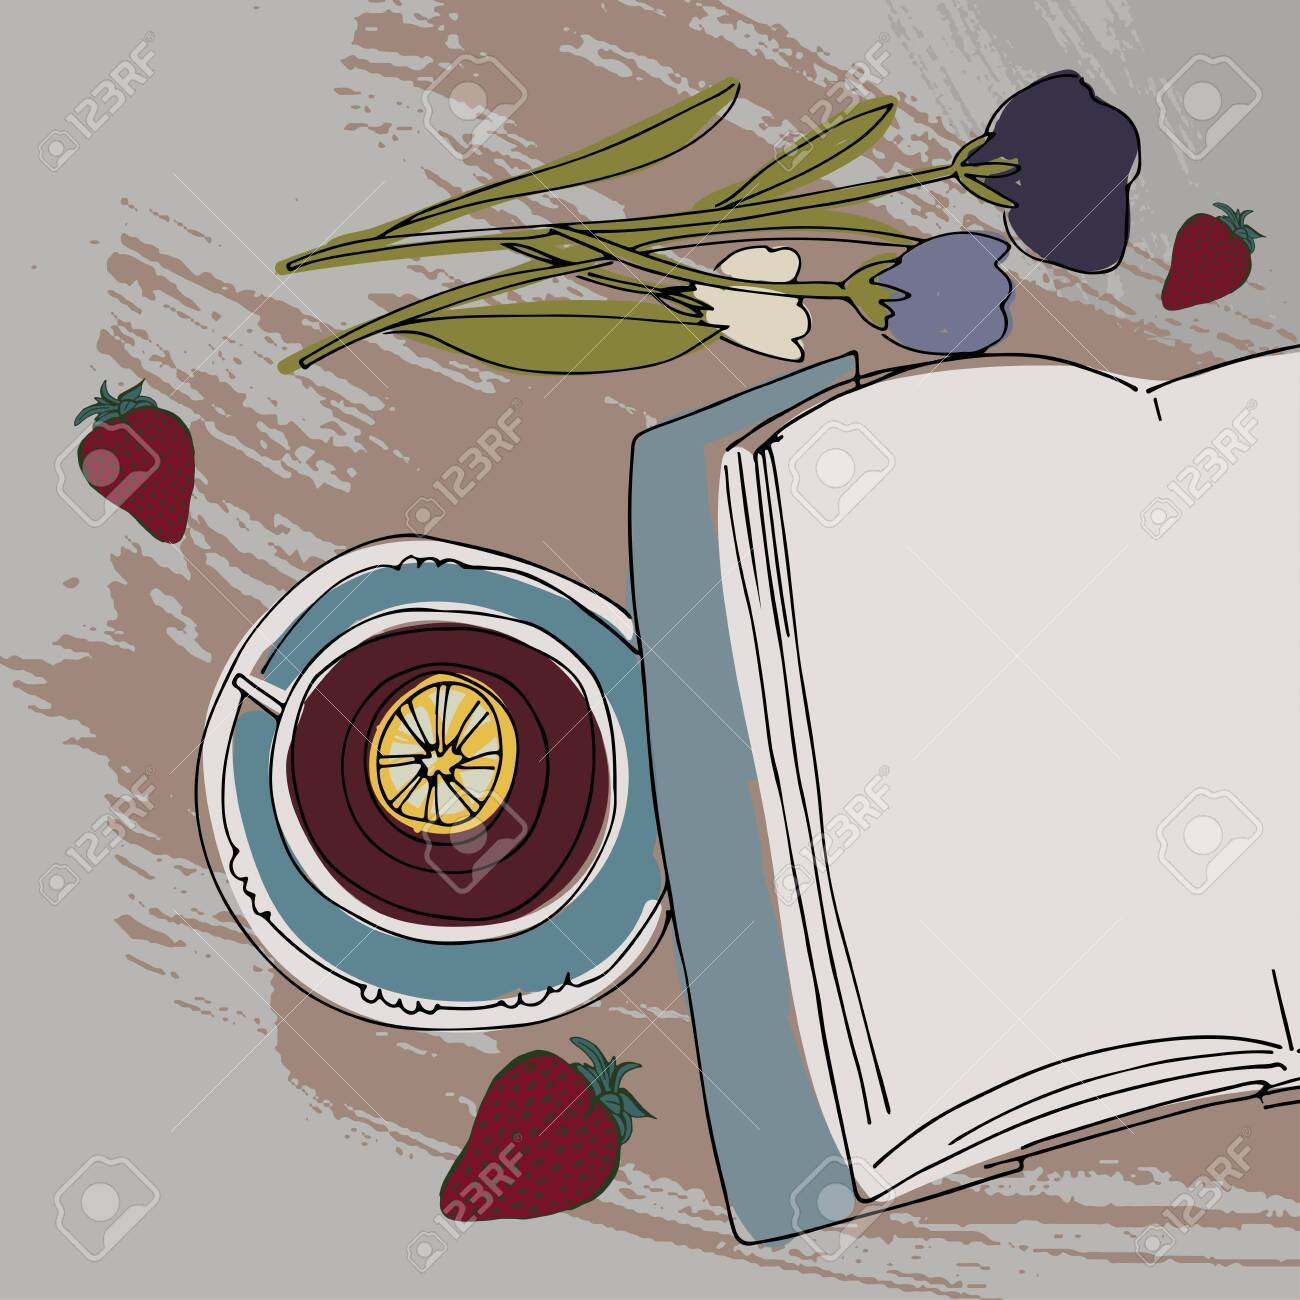 Tea, book, flowers relax illustration for your design: posters, banners, mock ups - 118664452